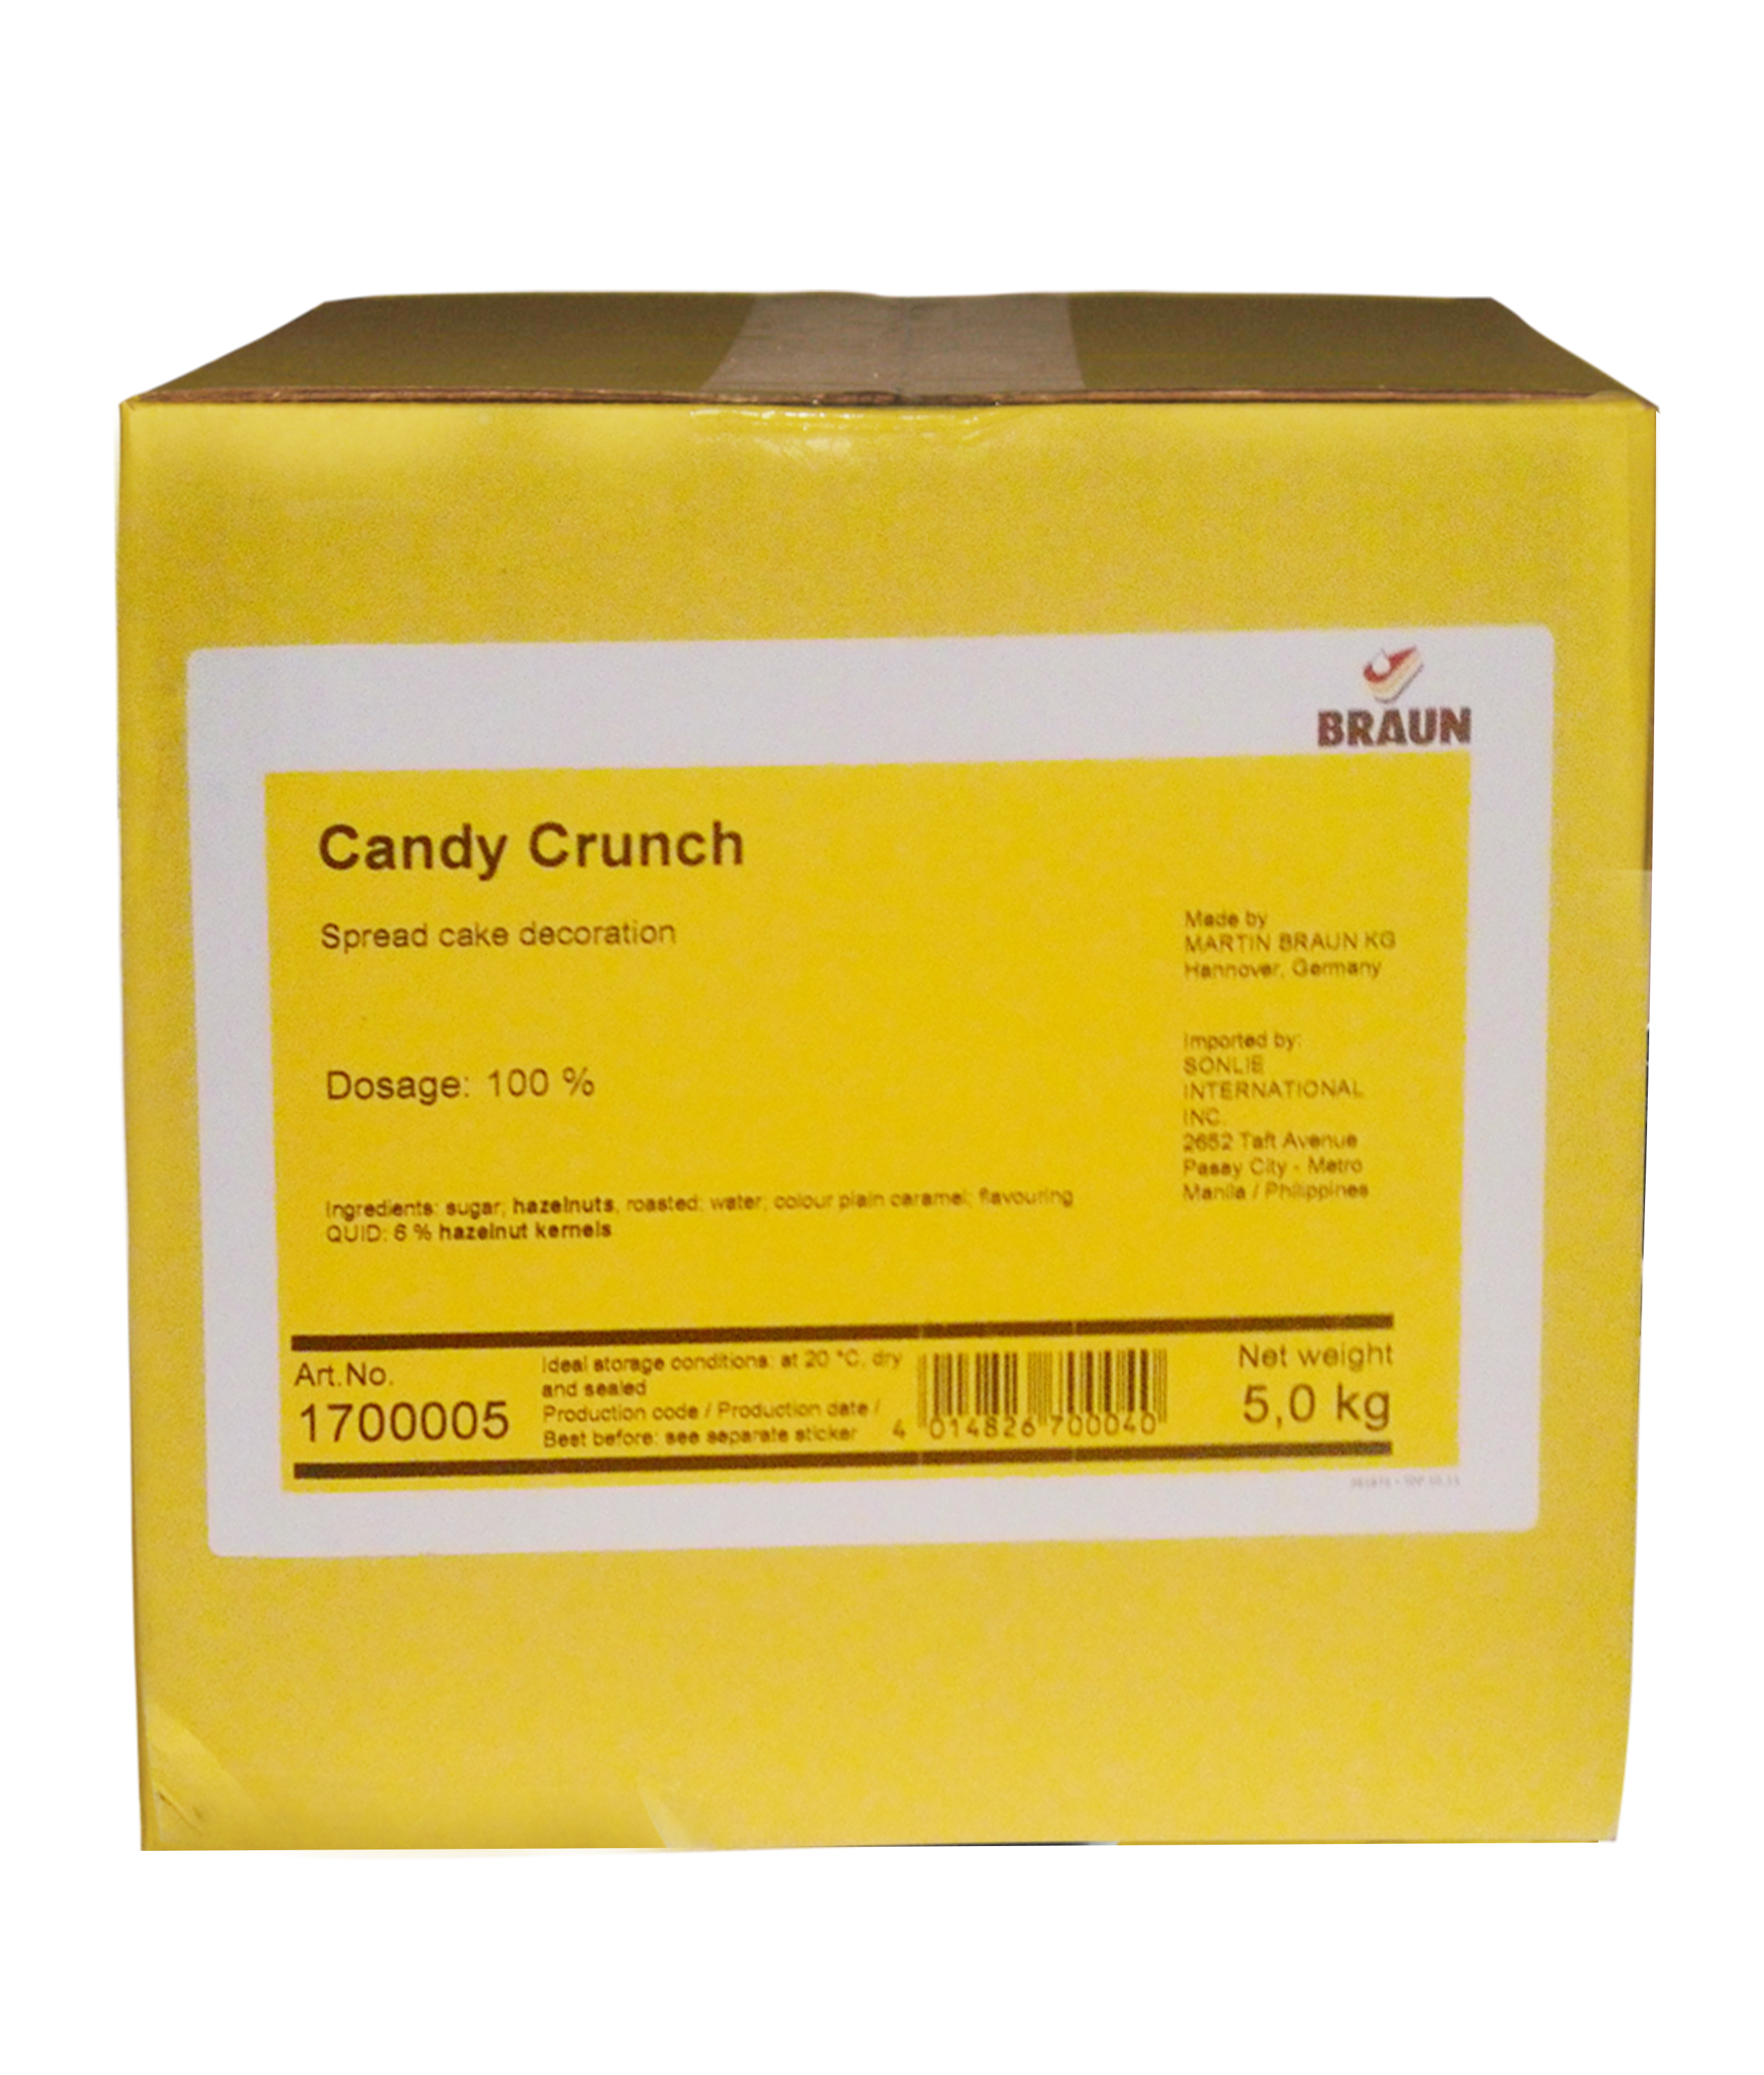 Candy Crunch Image